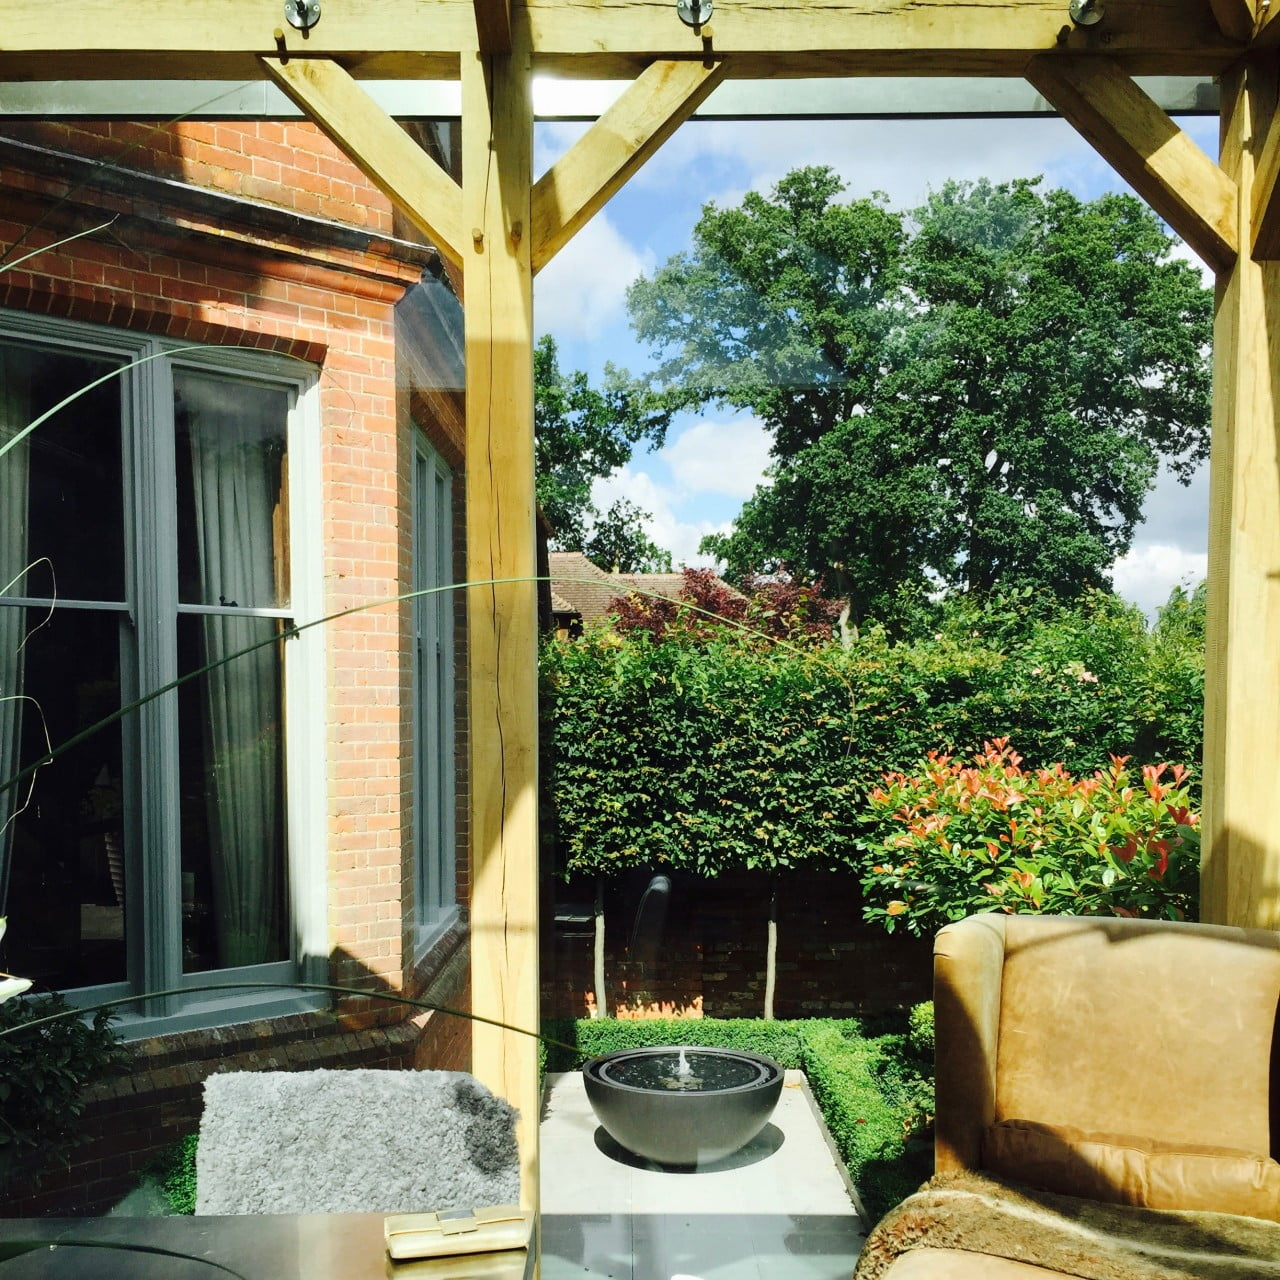 This is the view from inside our oak framed dining room looking out to our formal courtyard garden